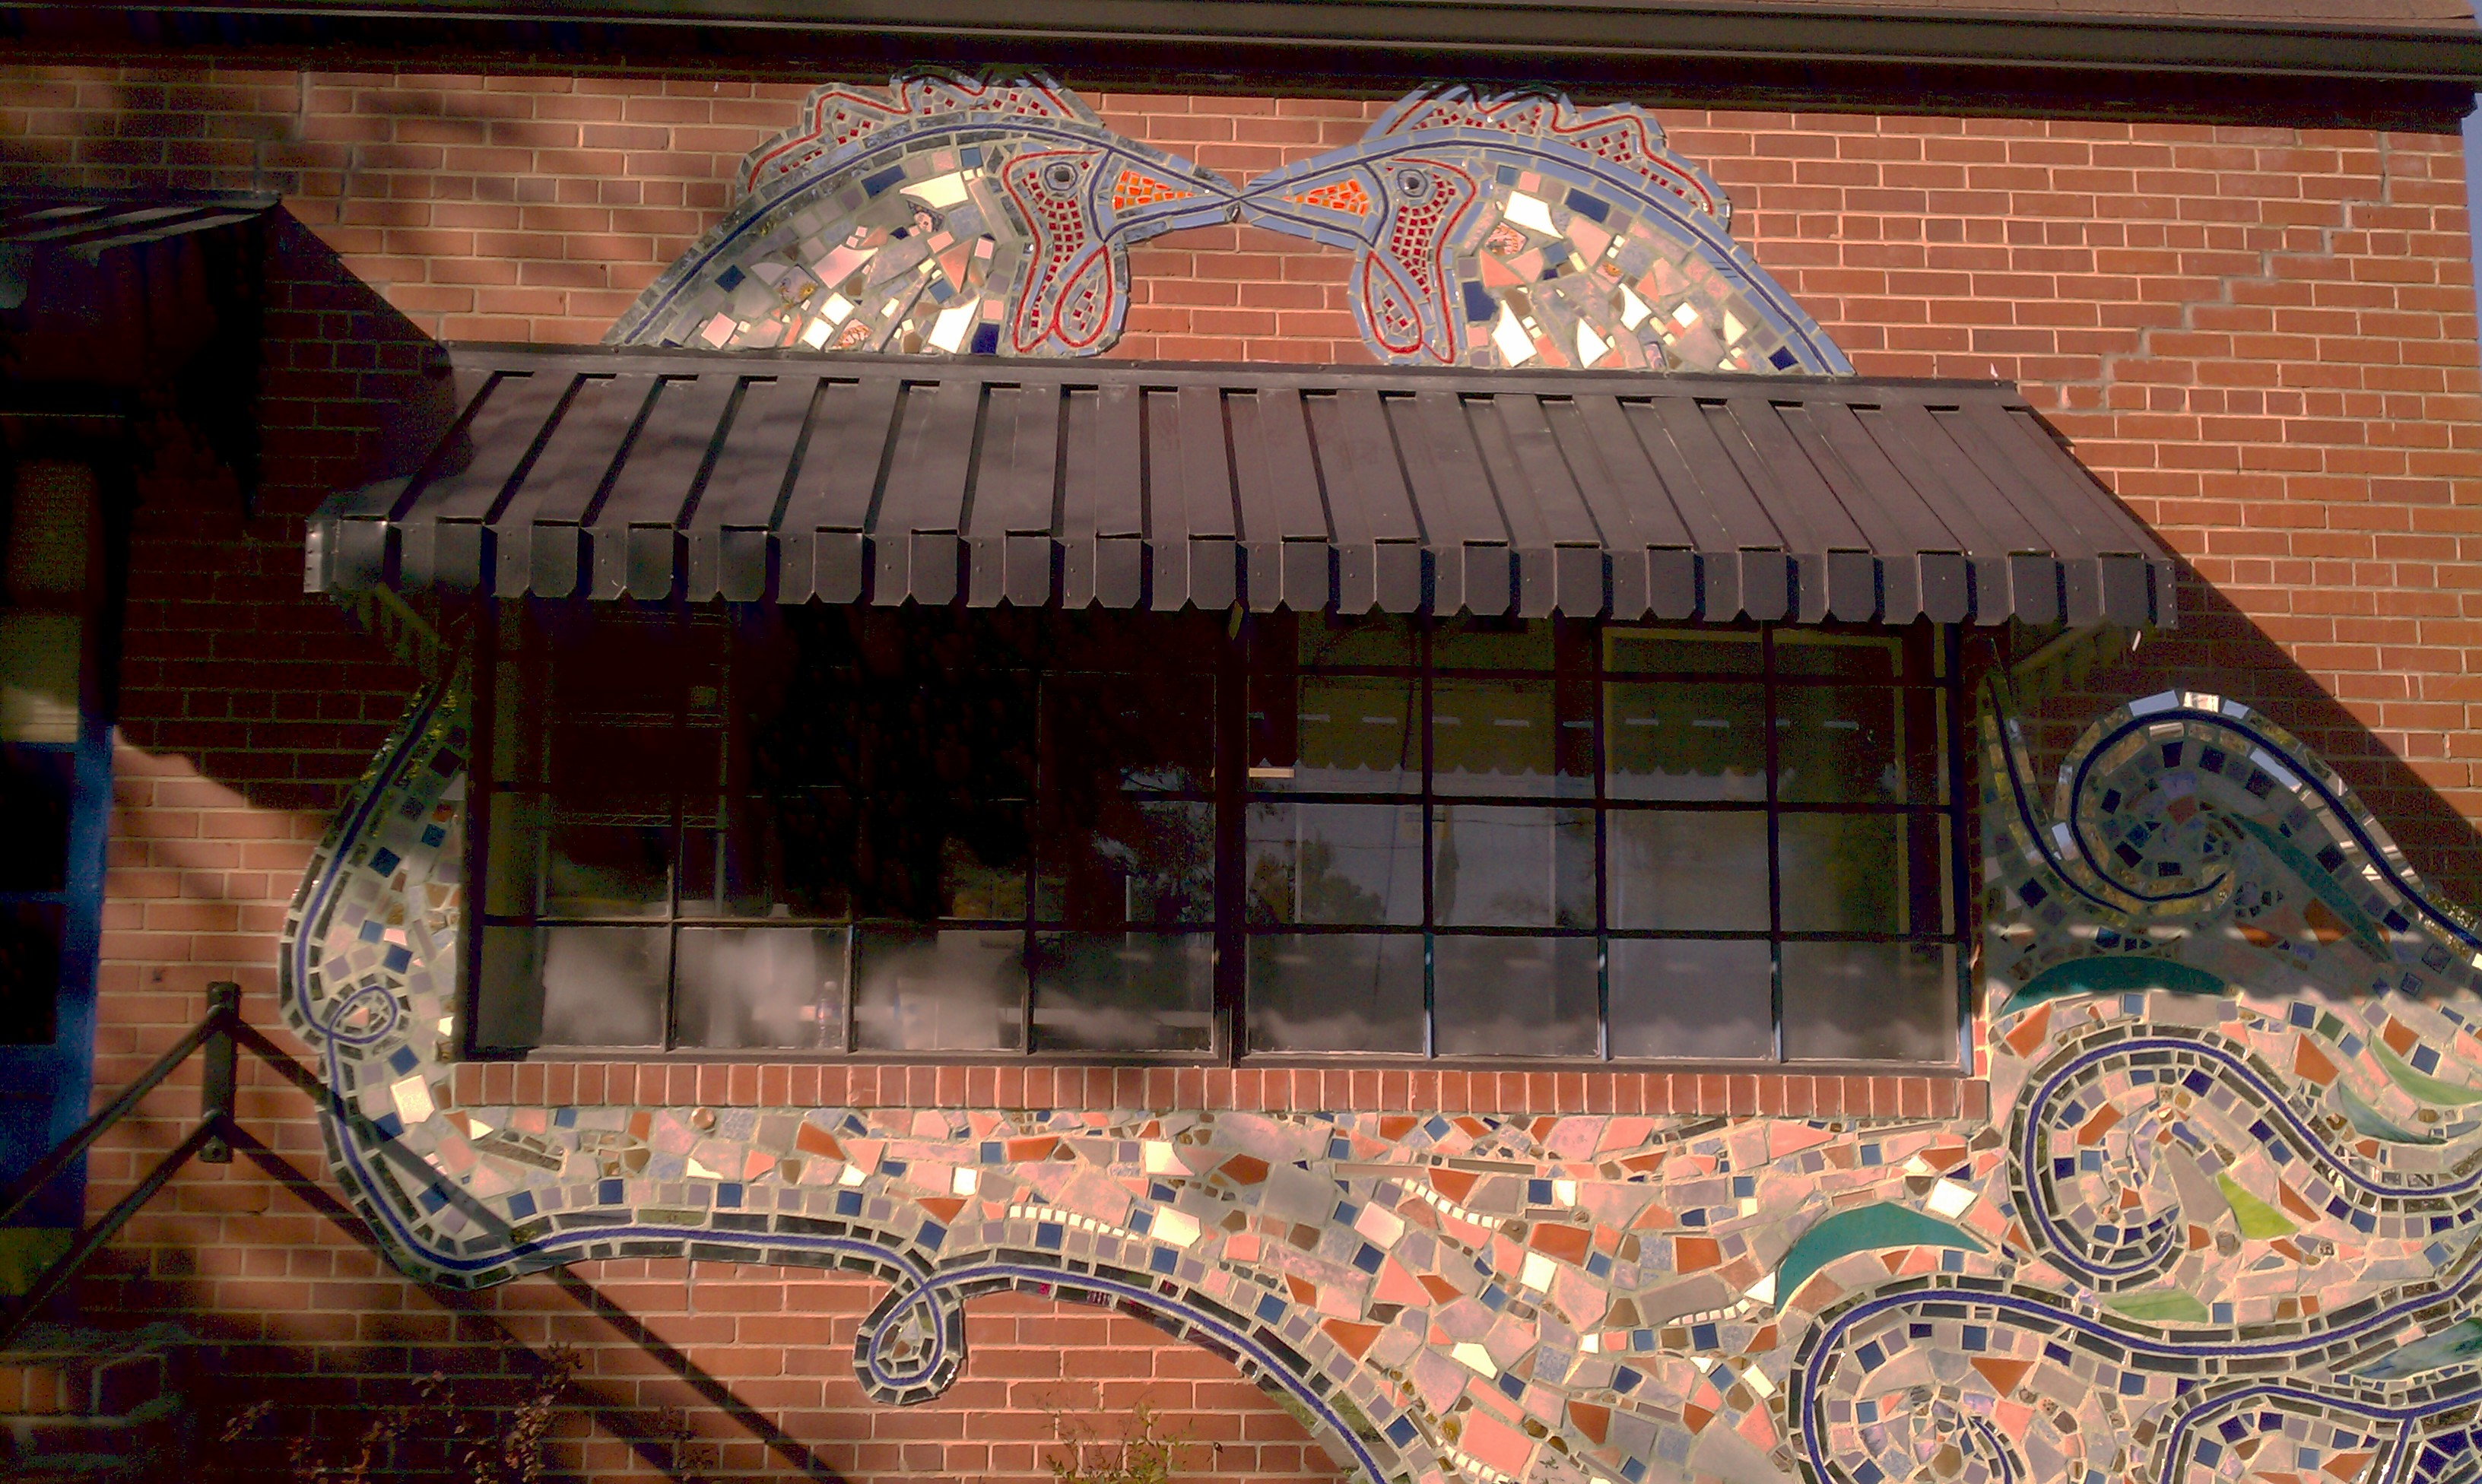 Lanelle Davis, a mosaic artist working in Pittsboro and Chapel Hill, NC, created this chicken mural on the wall of a building that had once been a hatchery.